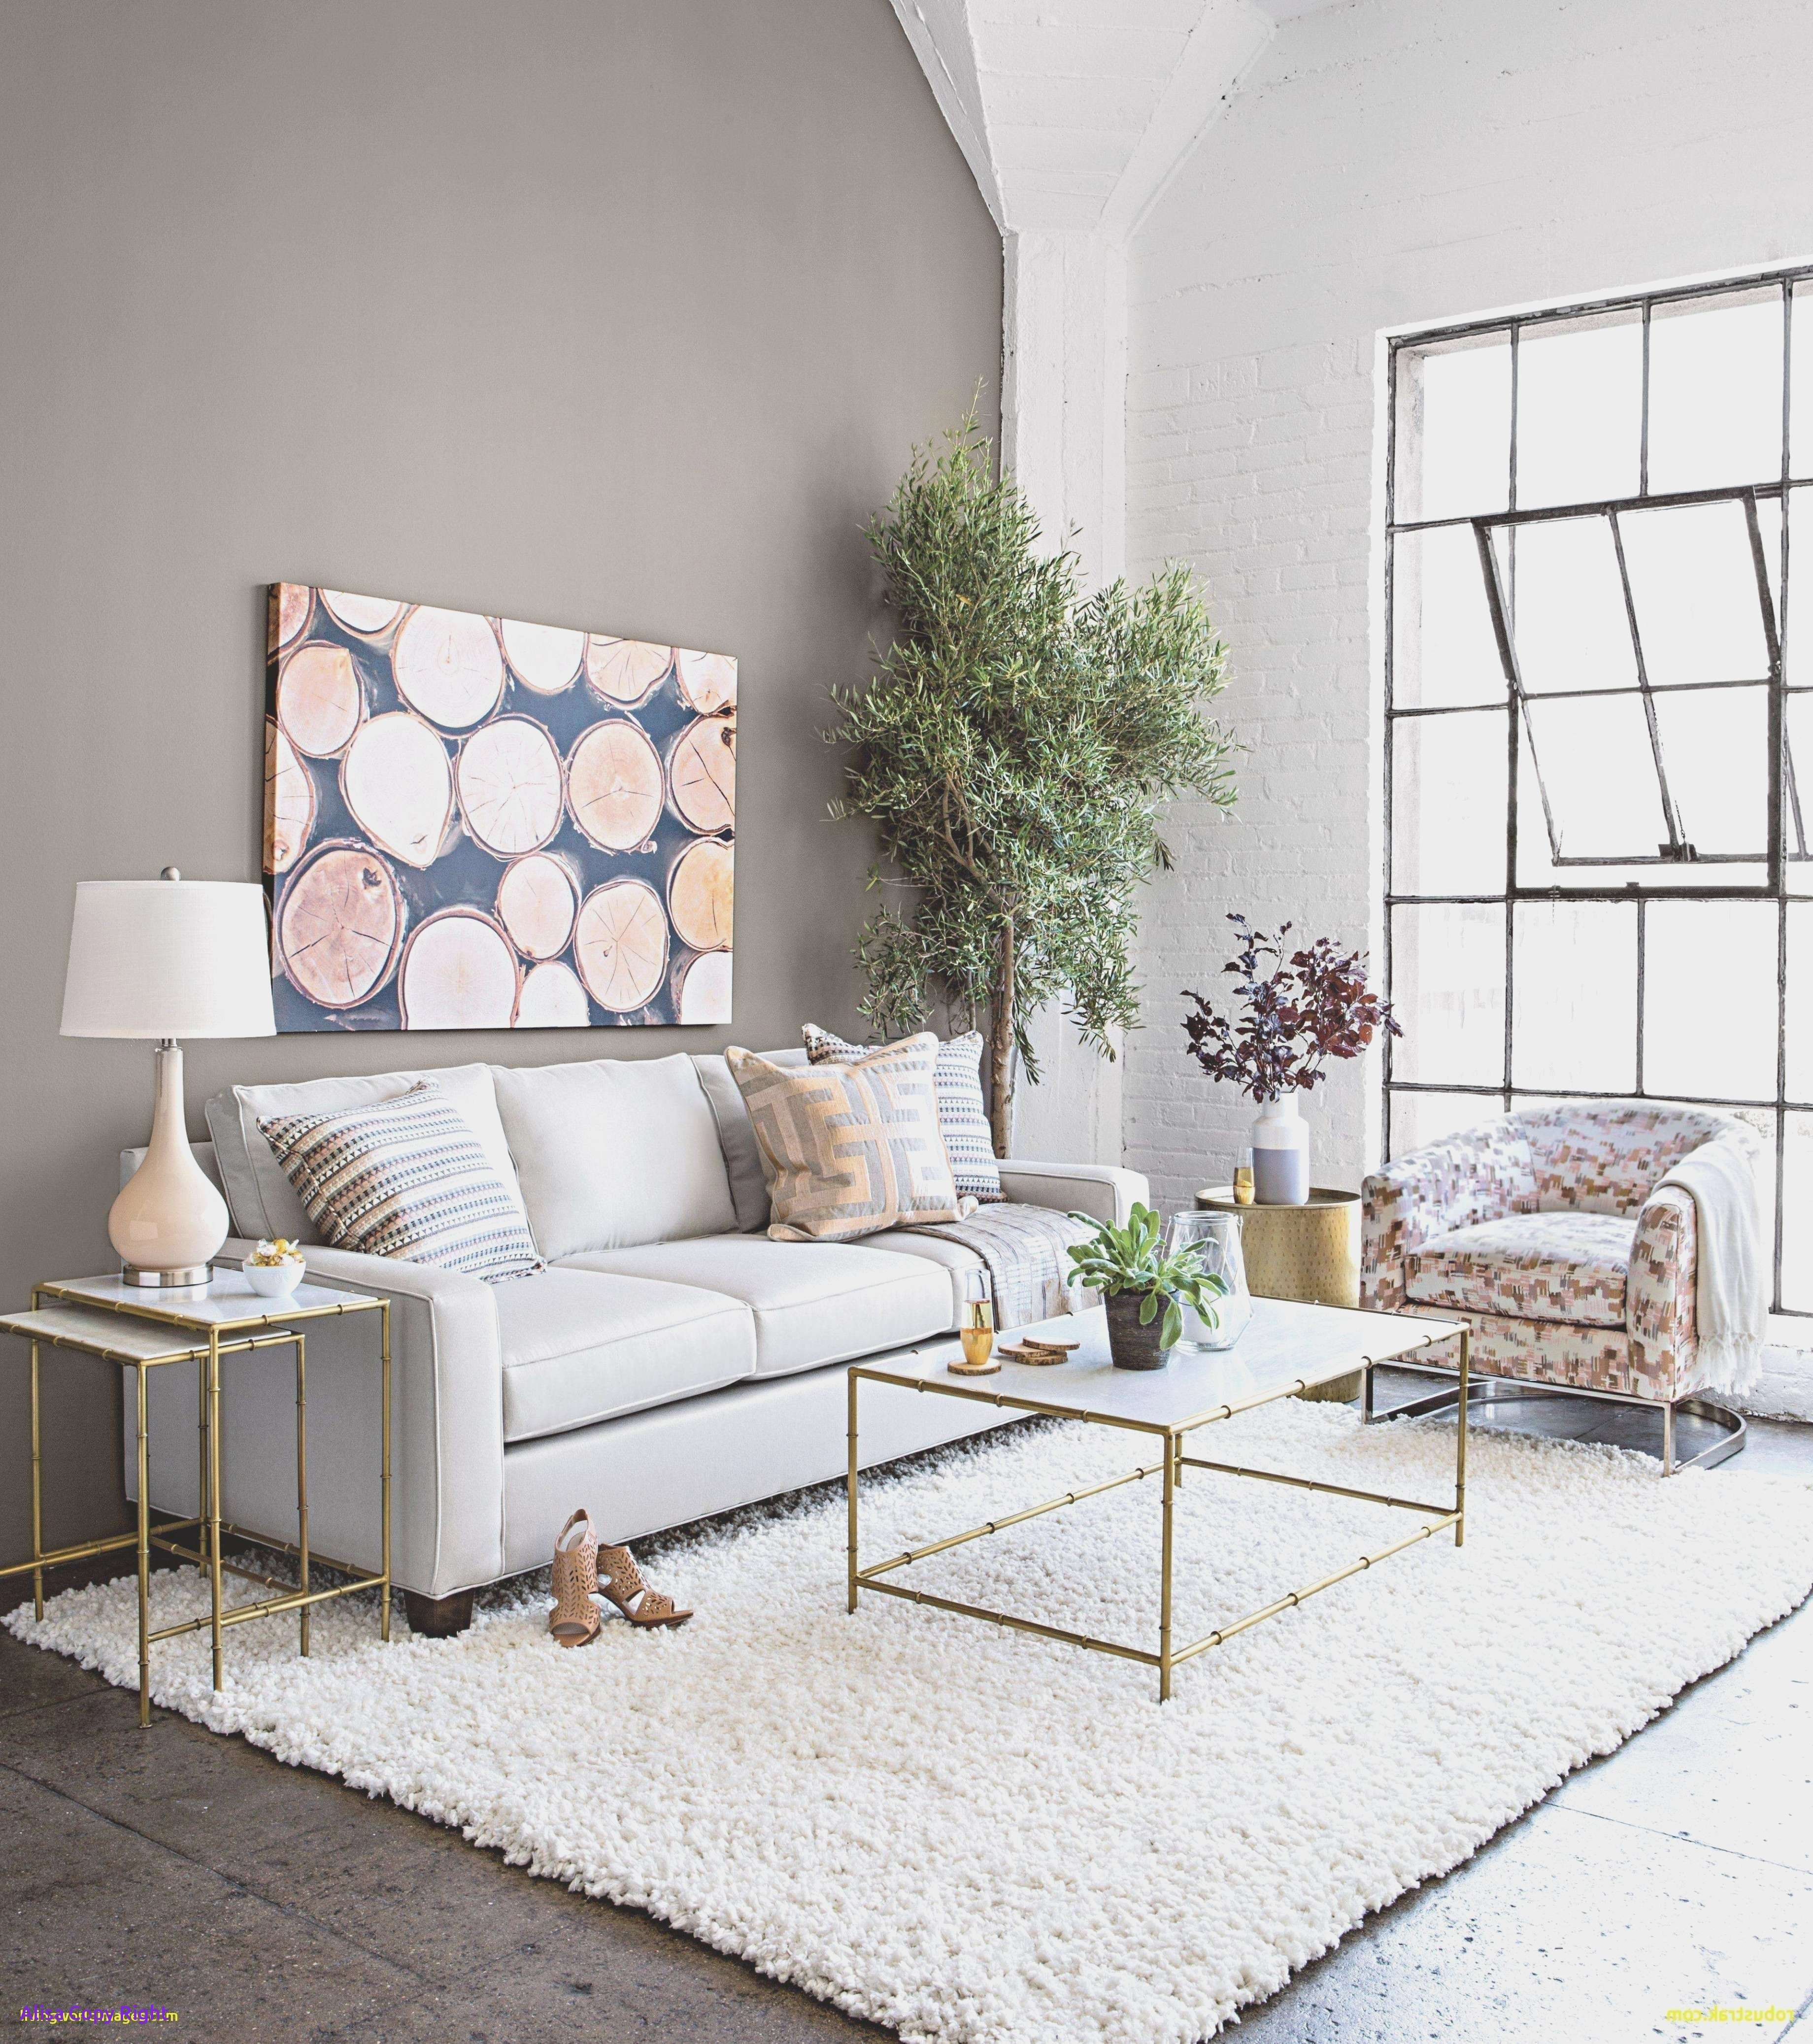 Pin By Home Decor Diy On Home Design Diy Living Room Grey Living Room Modern Living Room Sets #zen #living #room #on #a #budget